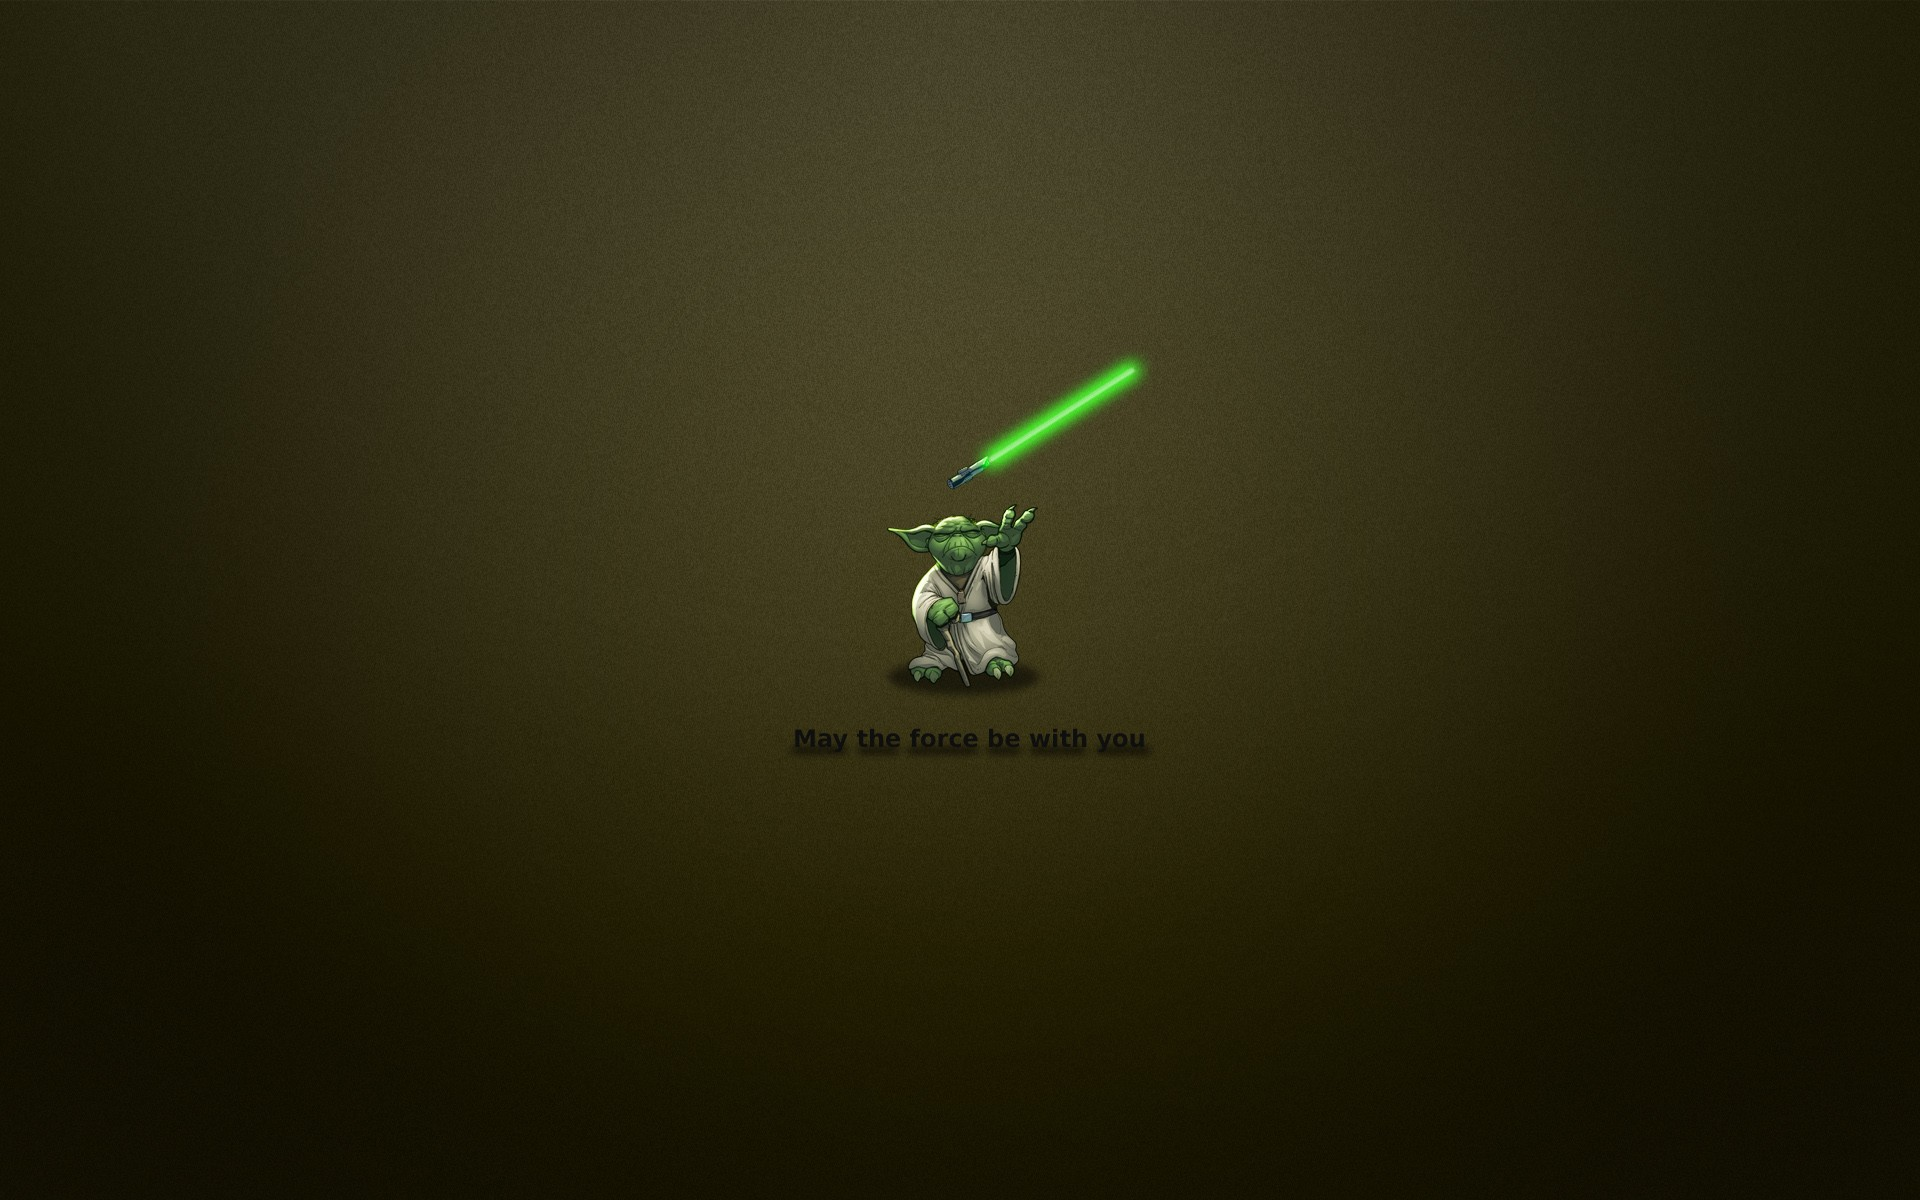 Game Of Thrones Quotes Wallpaper 1920x1080 Yoda Wallpapers 55 Wallpapers Adorable Wallpapers